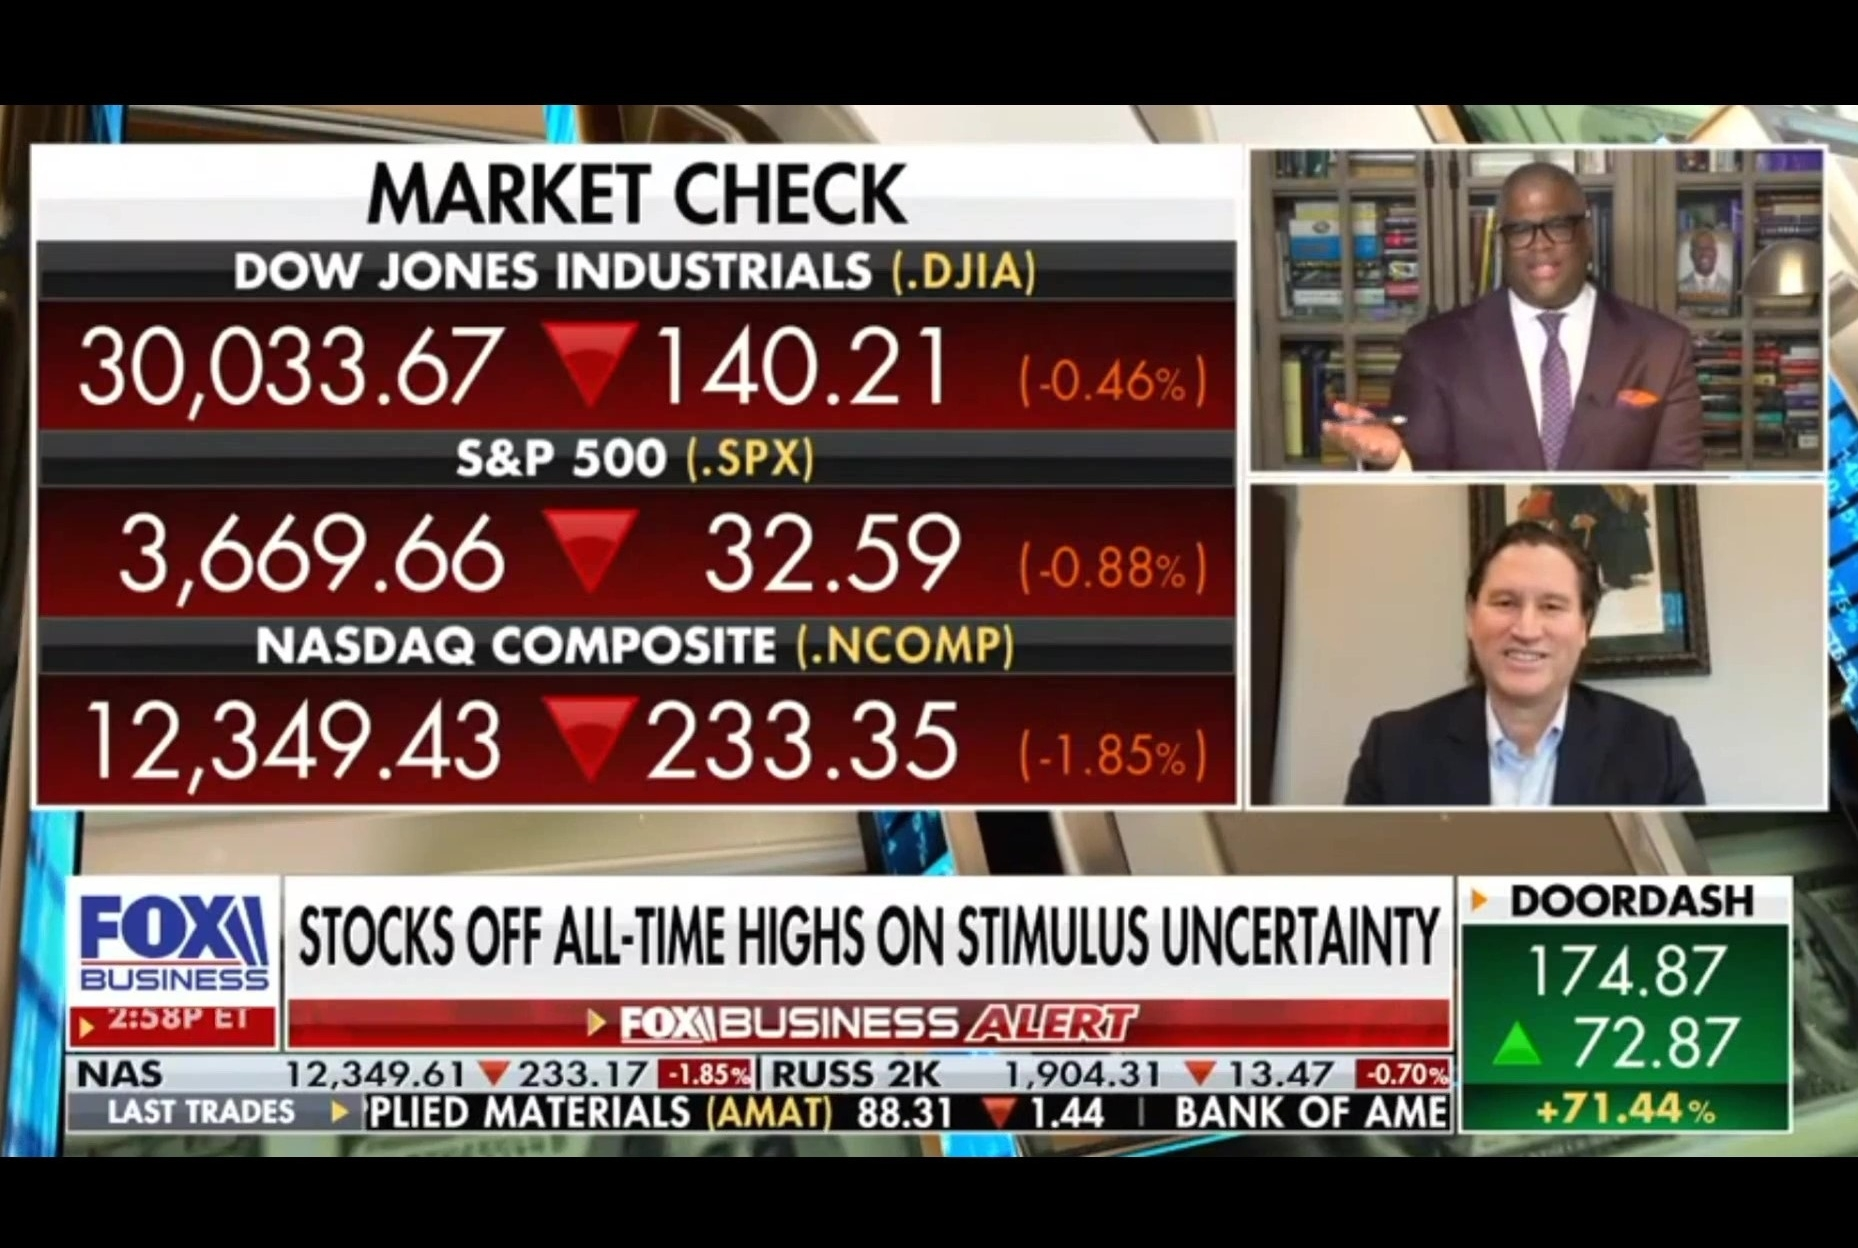 Stocks Off All-Time Highs on Stimulus Uncertainty